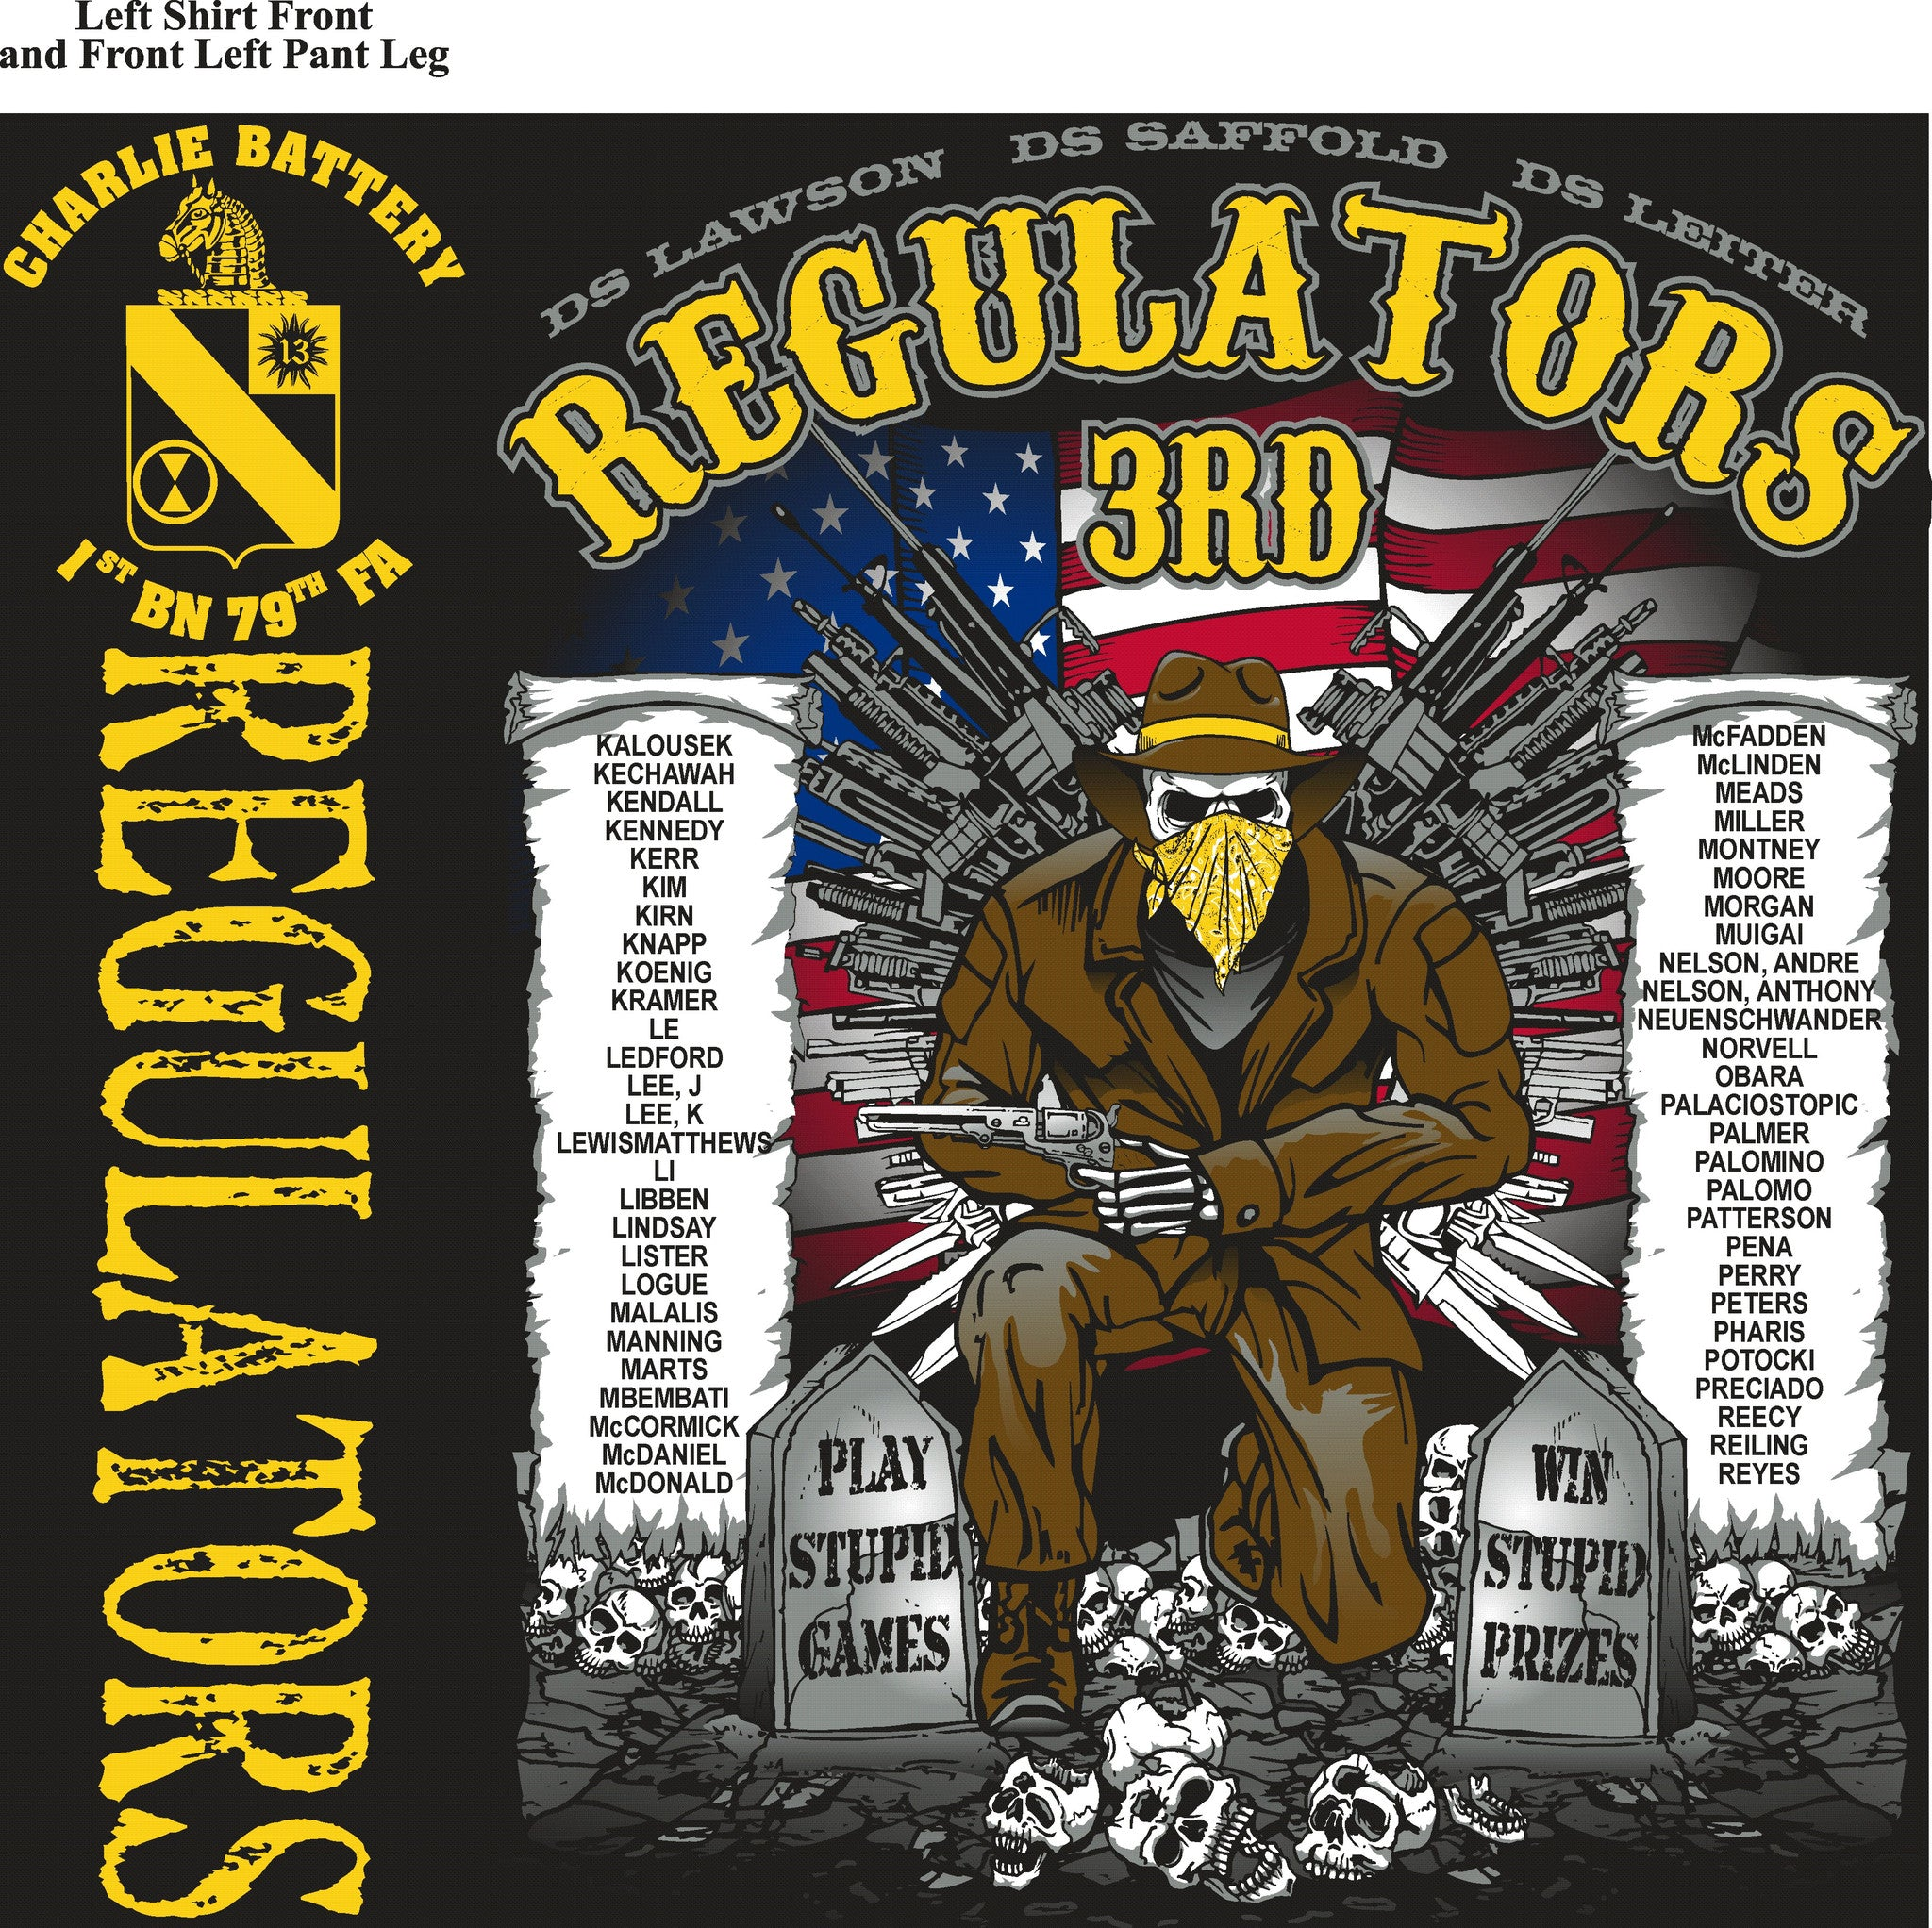 Platoon Shirts CHARLIE 1st 79th REGULATORS JULY 2015